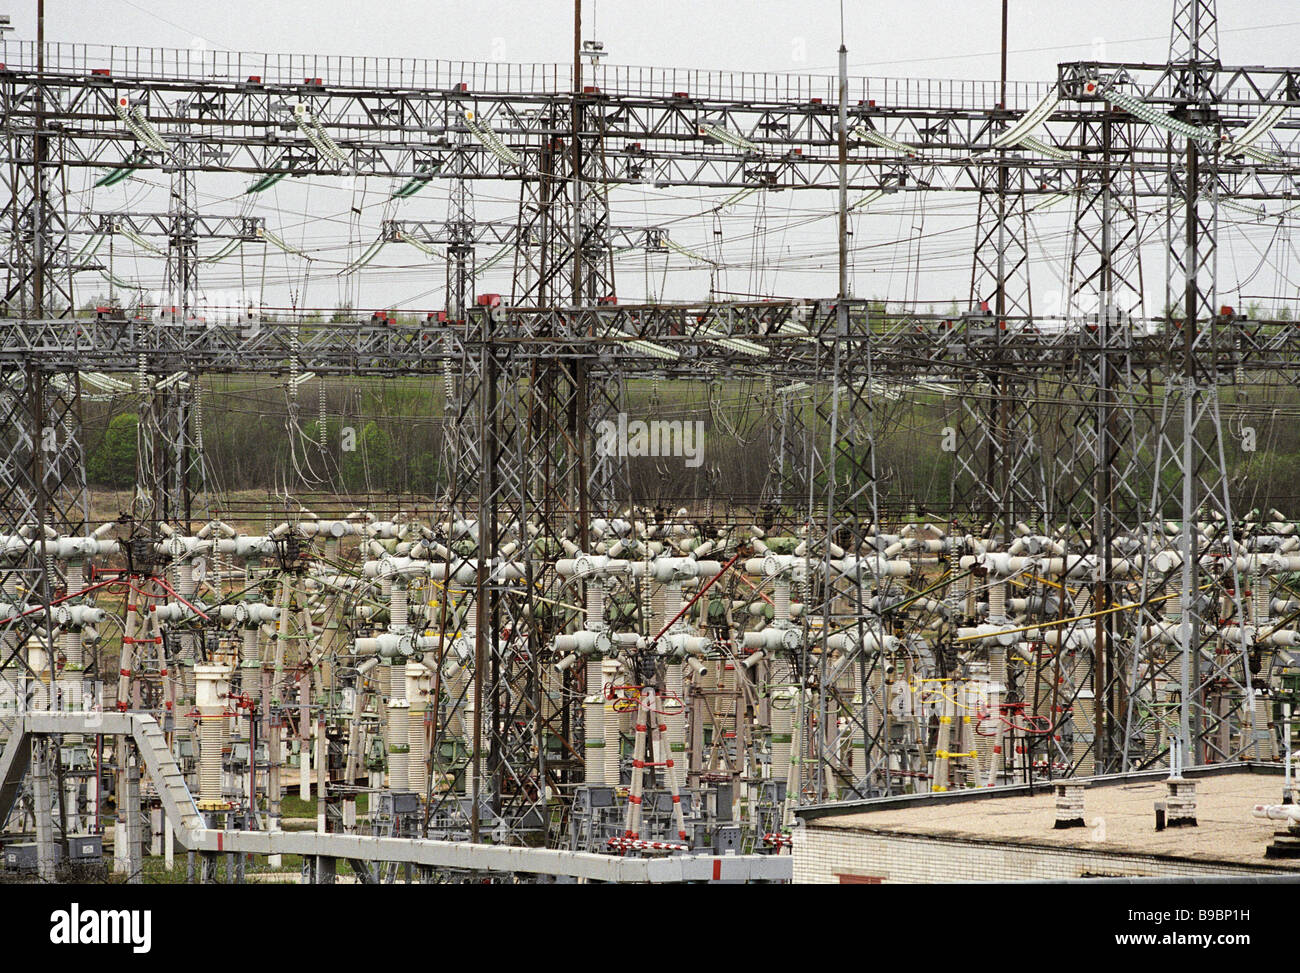 Kaliningrad nuclear power plant s power distribution network Stock Photo